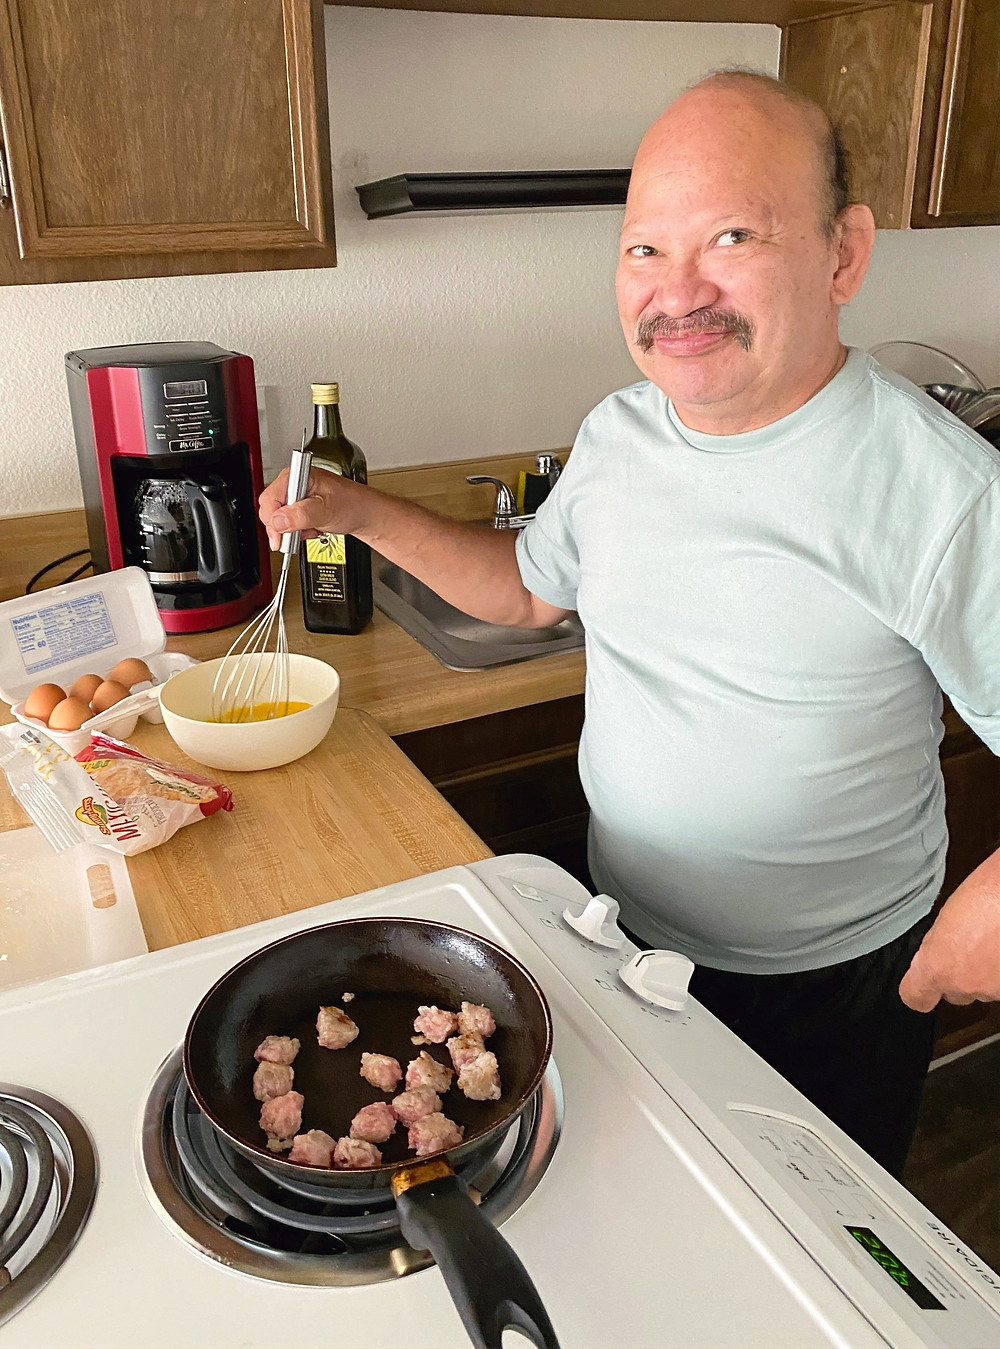 David cooking breakfast in his new home